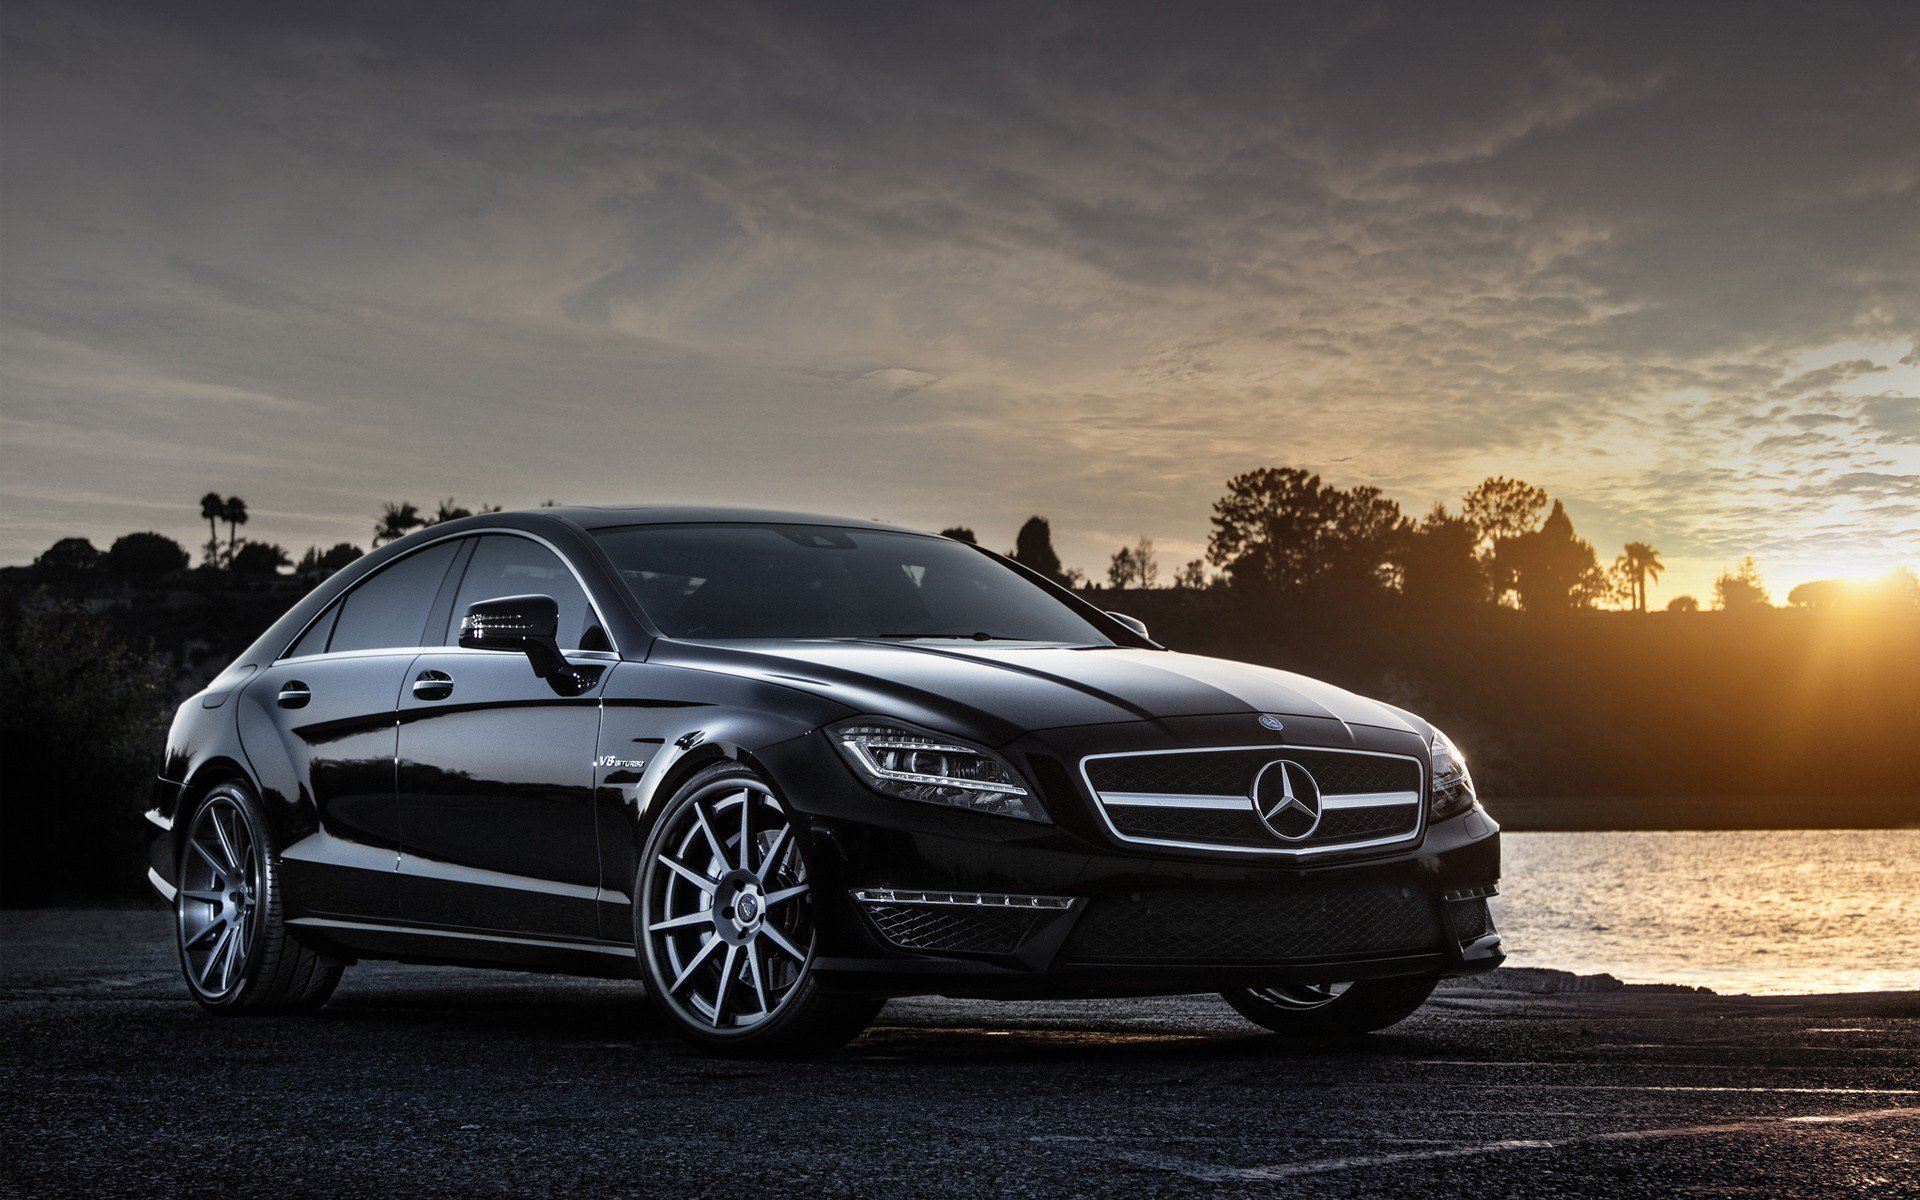 Latest Vorsteiner For Mercedes Benz Wallpaper Hd Car Wallpapers Free Download